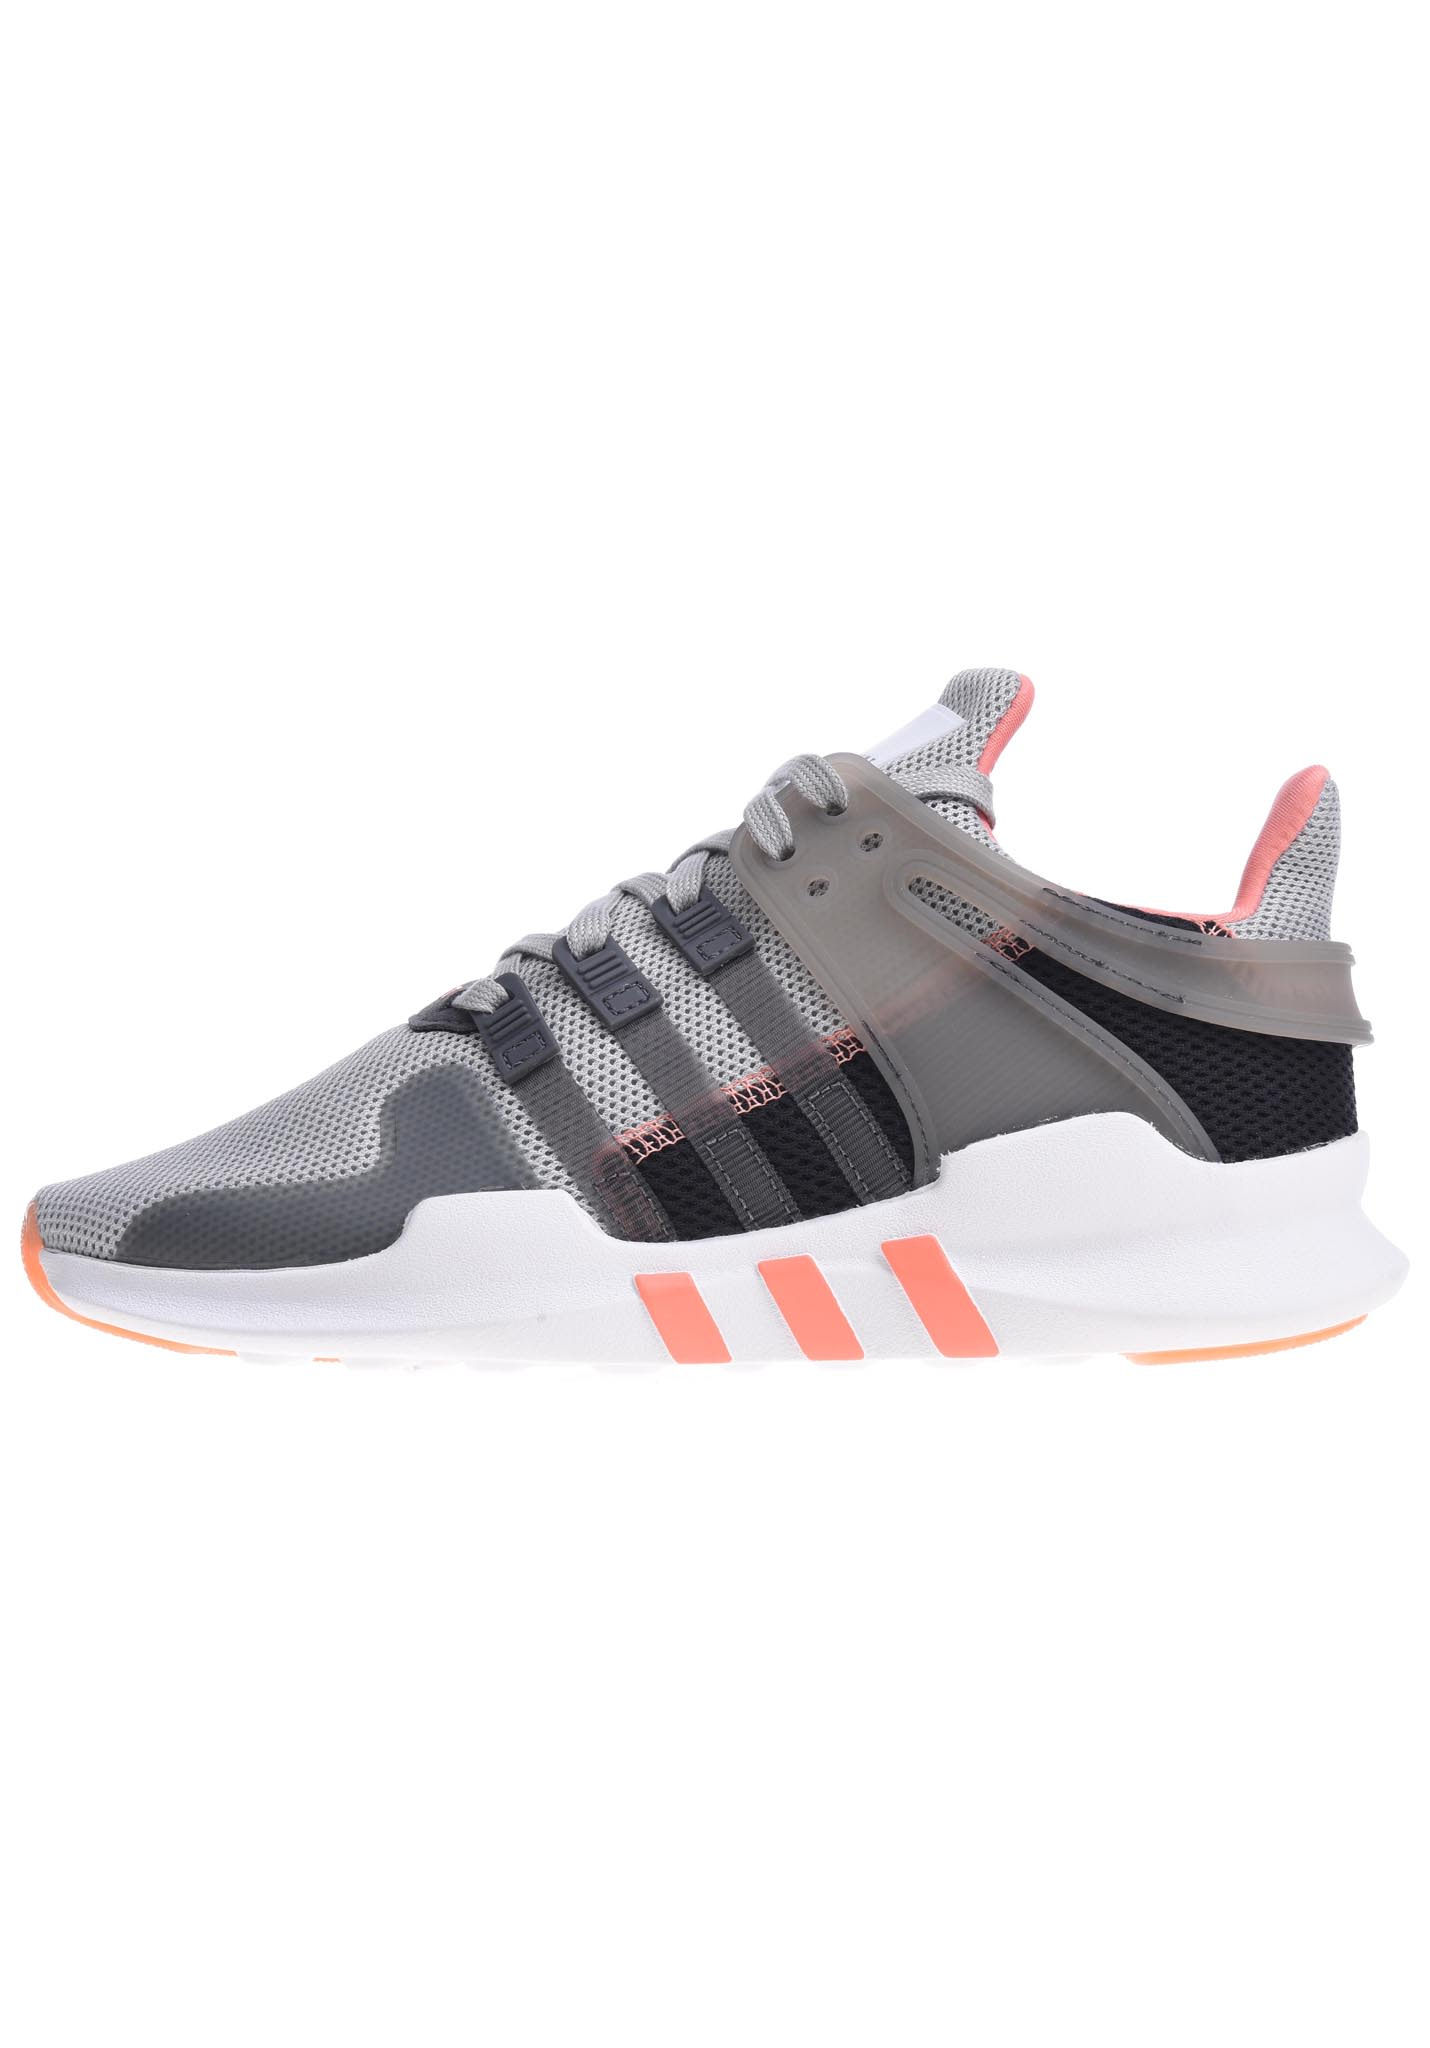 newest 29ffd d5127 ADIDAS ORIGINALS Eqt Support Adv - Sneaker per Donna - Grigio - Planet  Sports